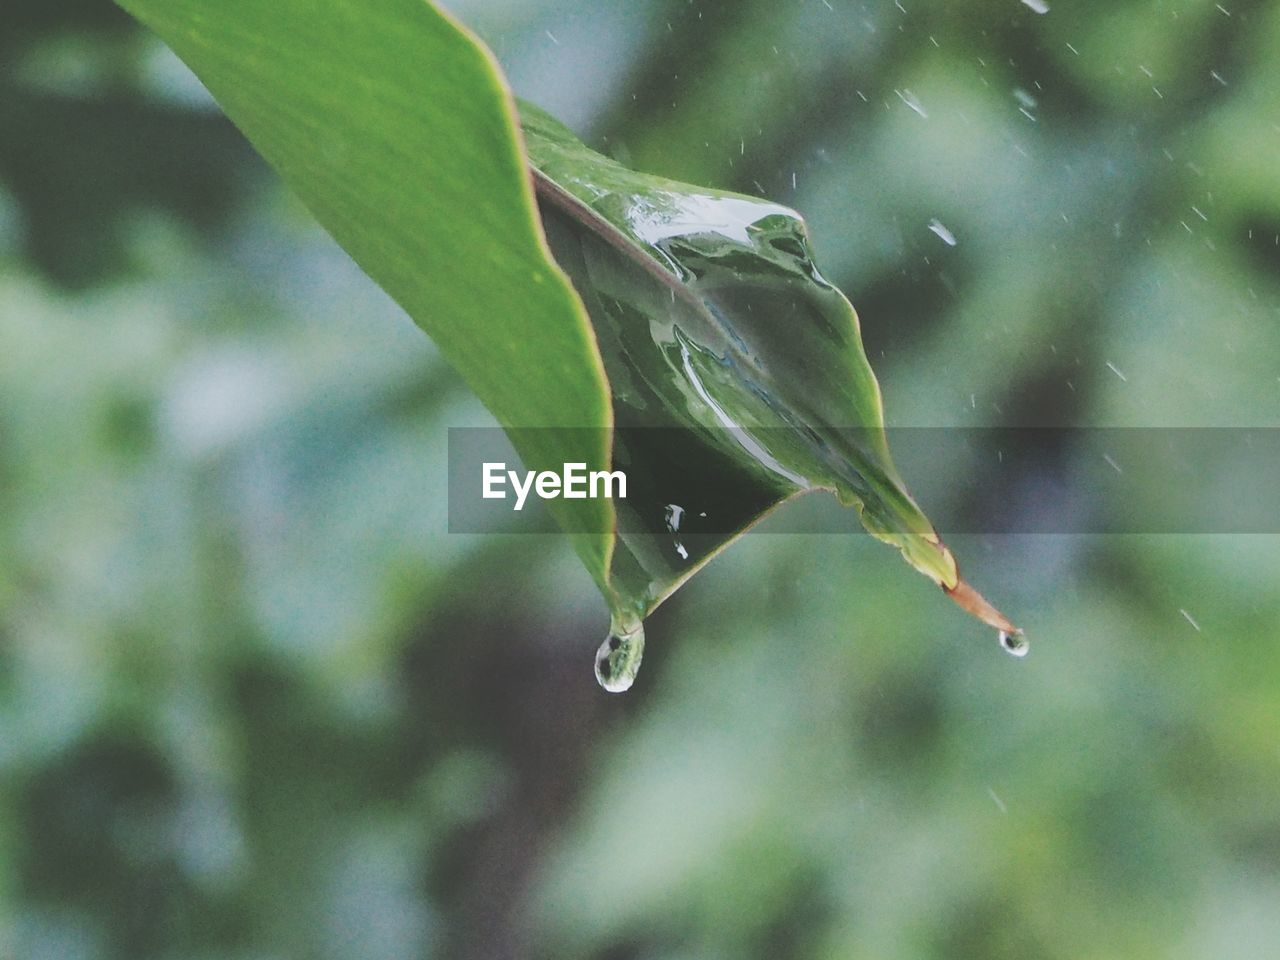 drop, water, nature, leaf, plant, growth, wet, beauty in nature, day, focus on foreground, no people, fragility, green color, close-up, outdoors, raindrop, freshness, purity, animal themes